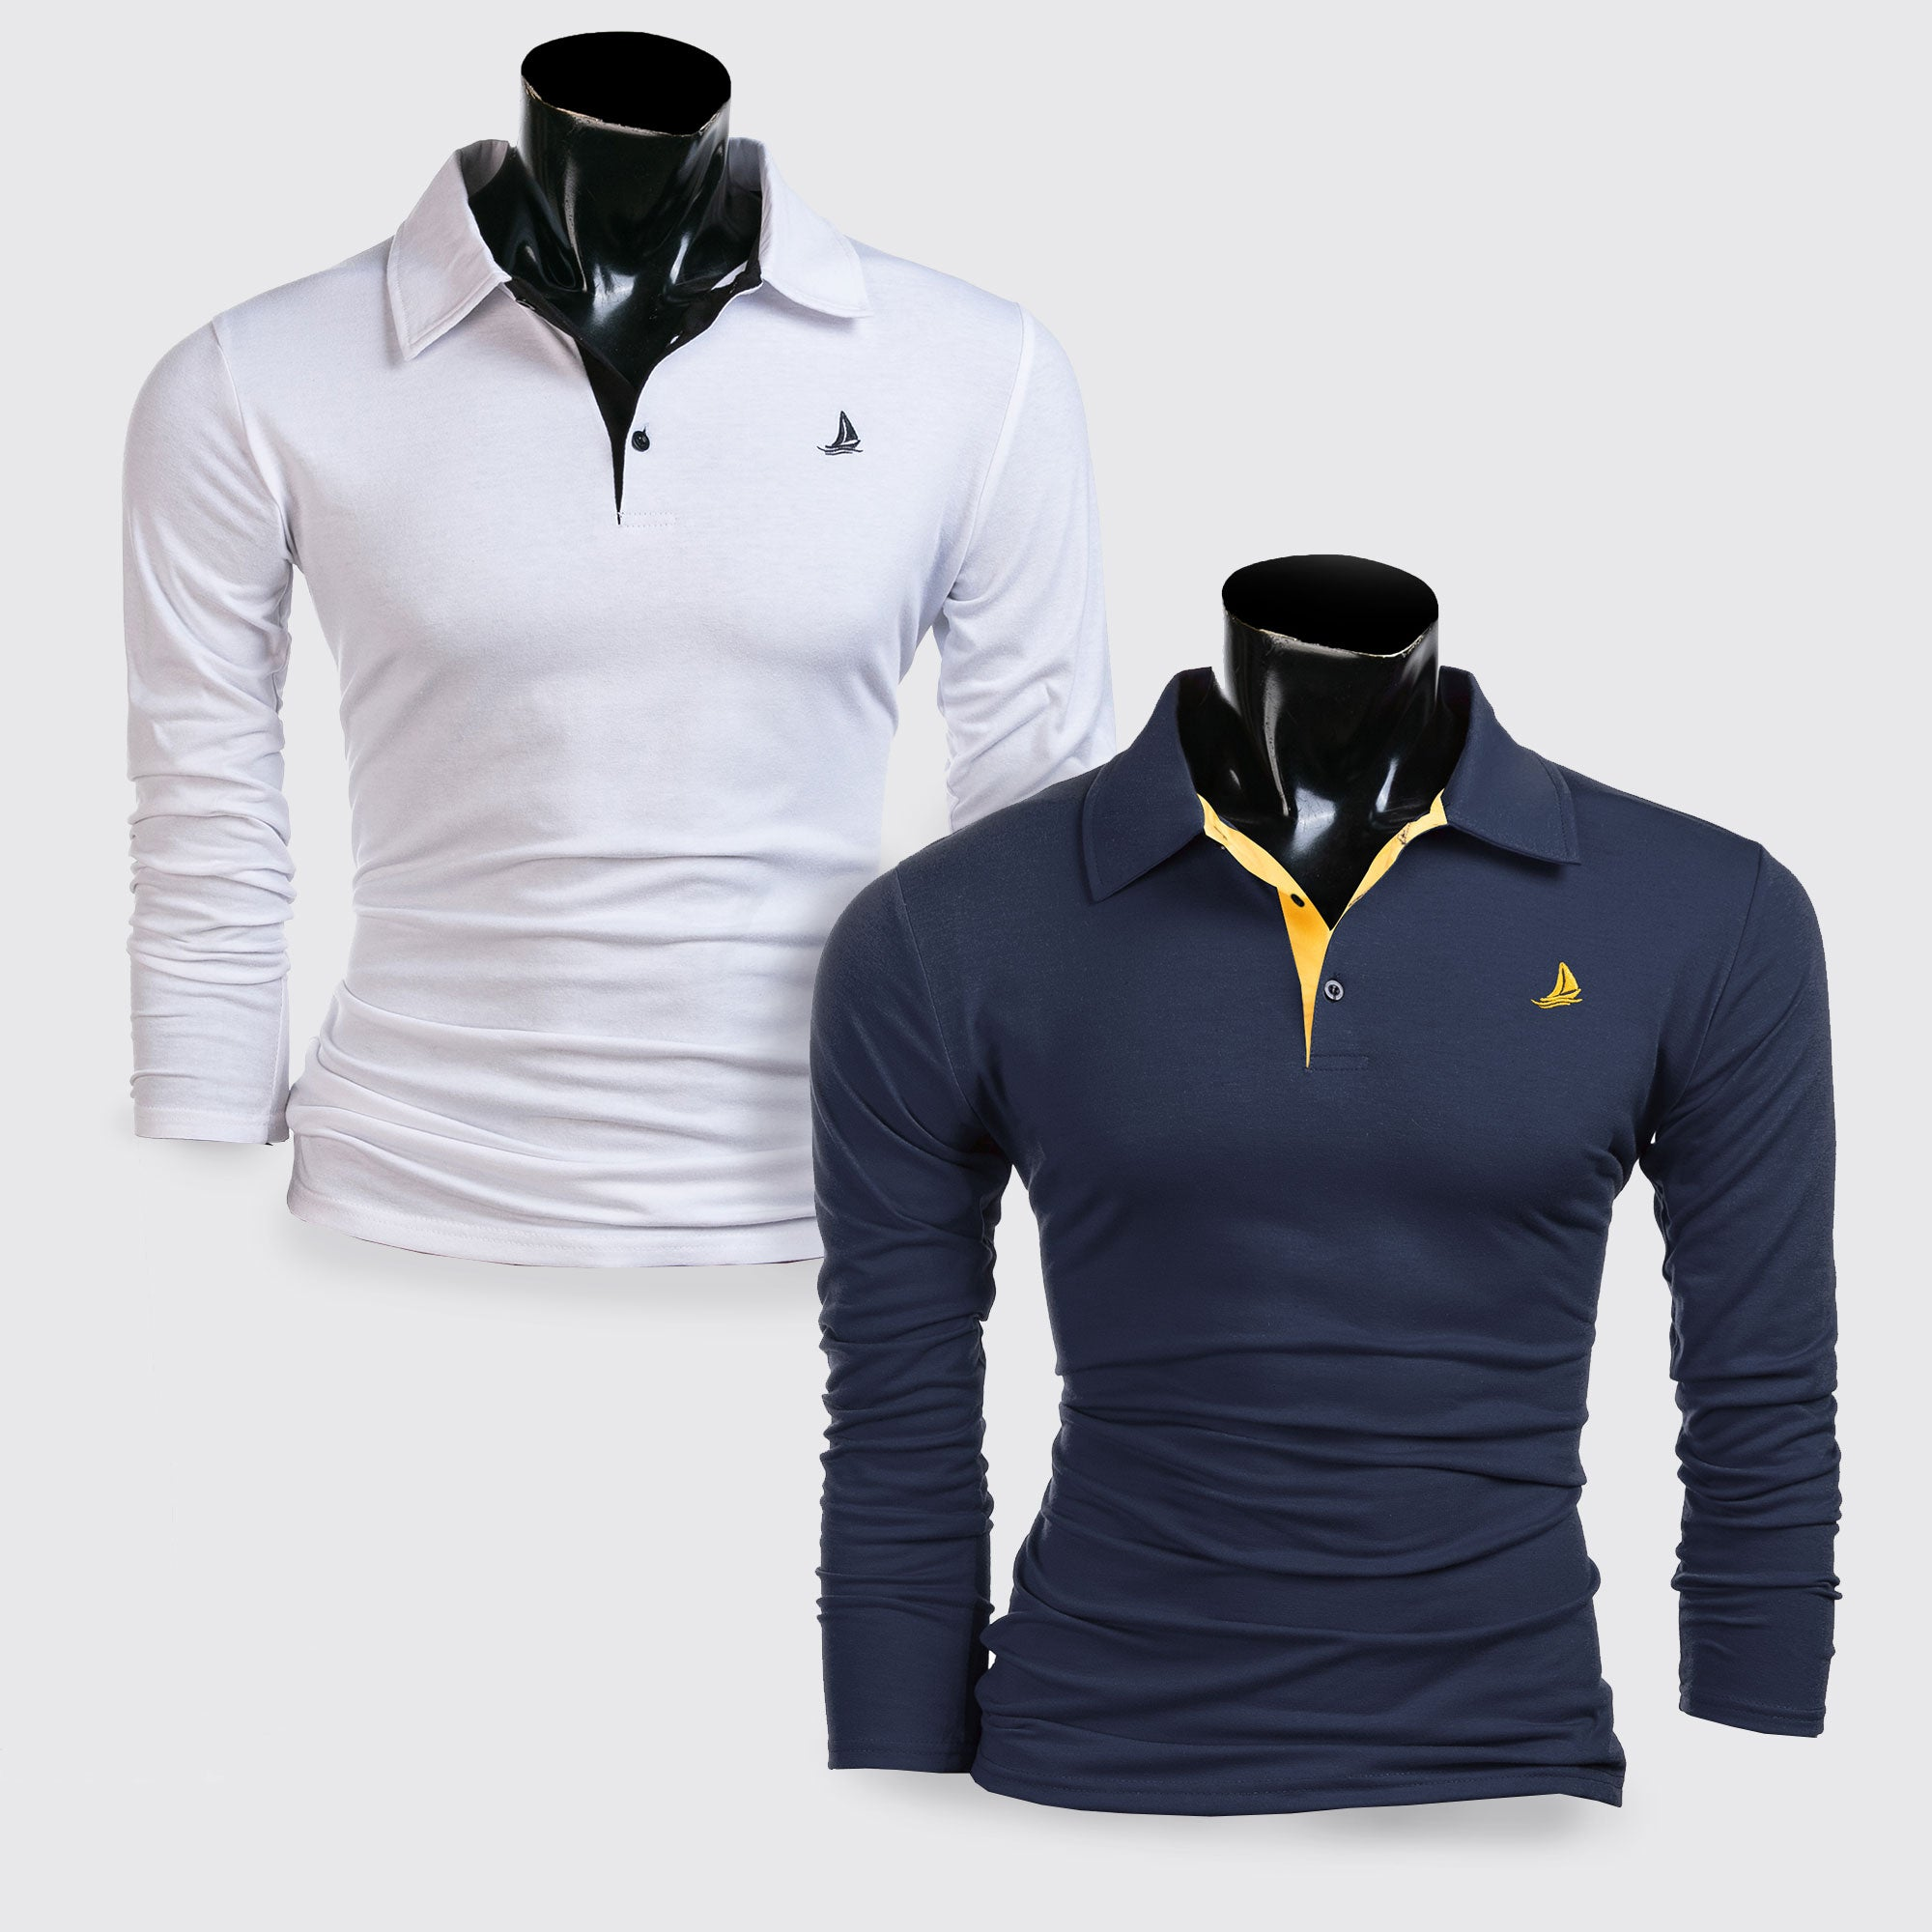 LS Bradley Polo 2 Pack - White & Navy - Blu Apparel